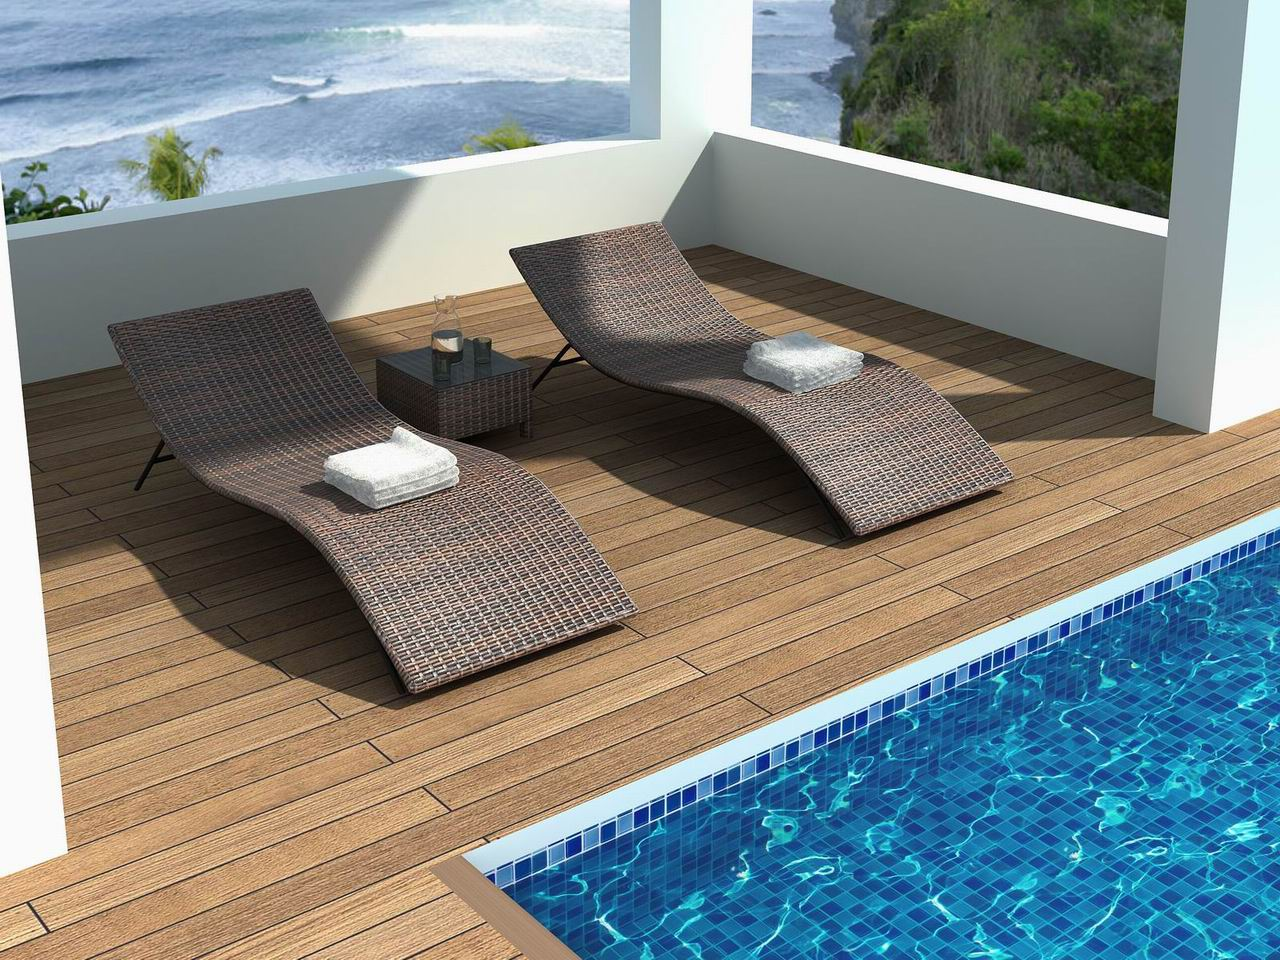 popular of pool and patio furniture home decorating inspiration patio ideas